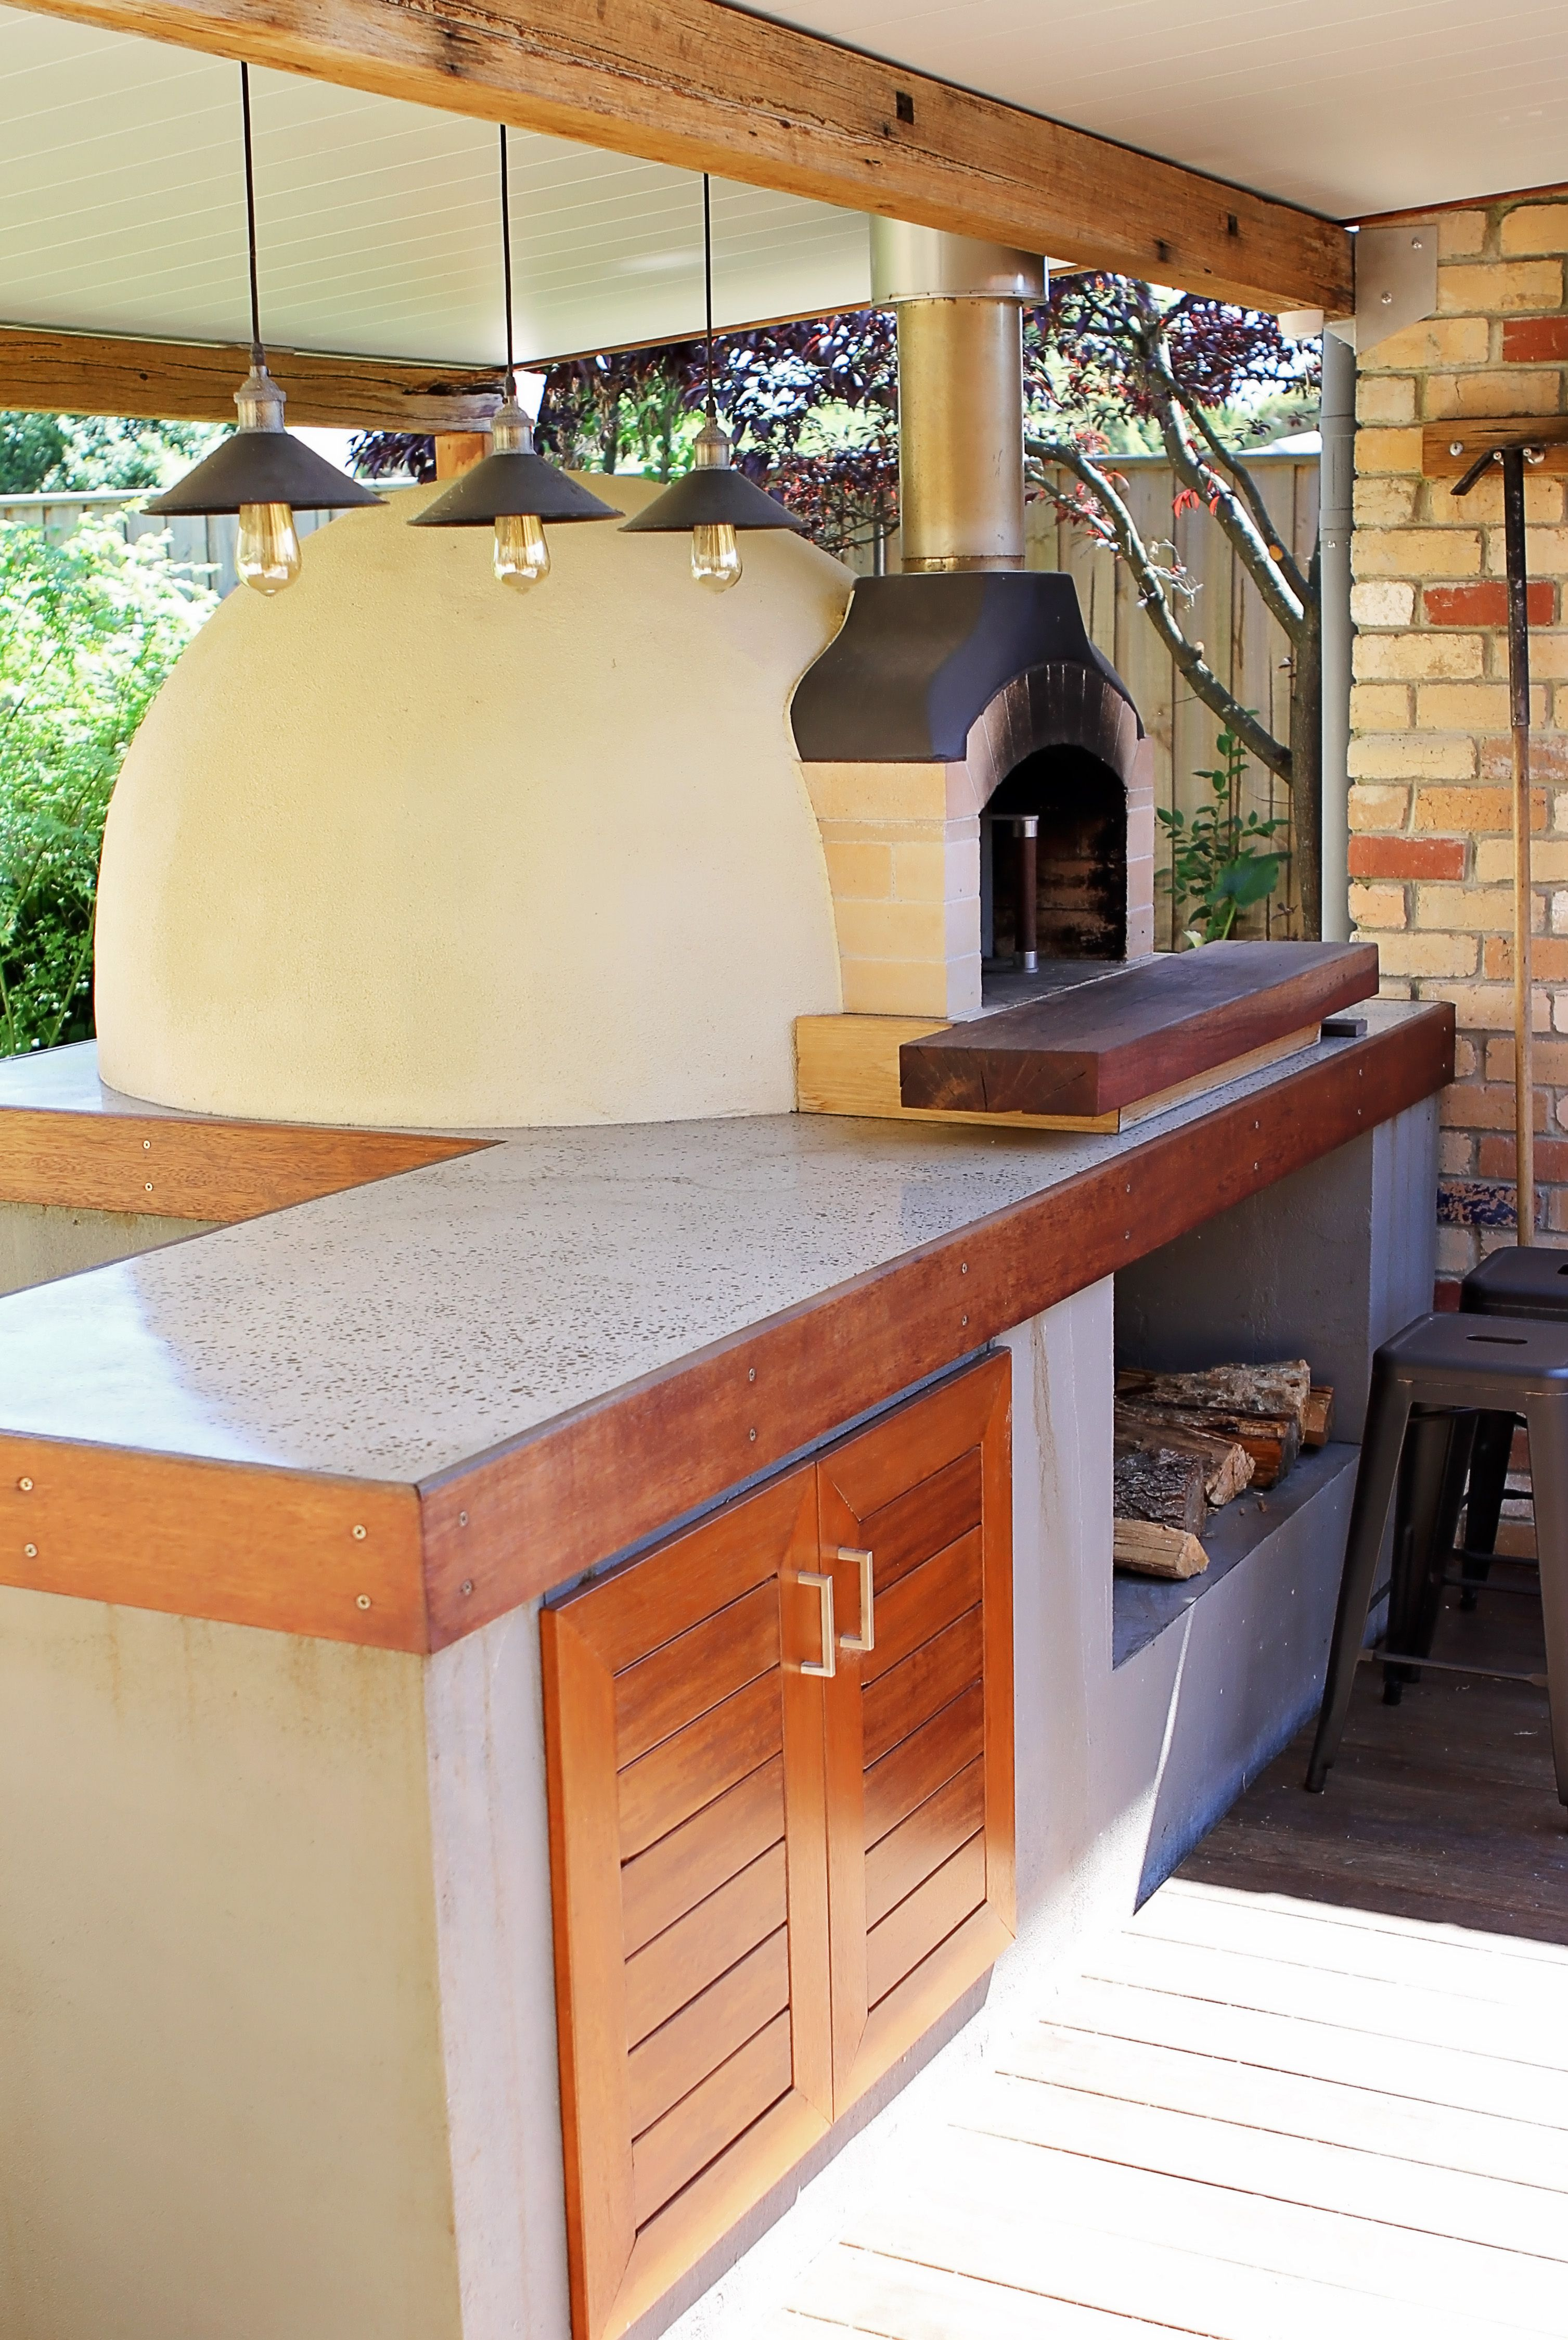 Exposed aggregate polished concrete benchtop with wood